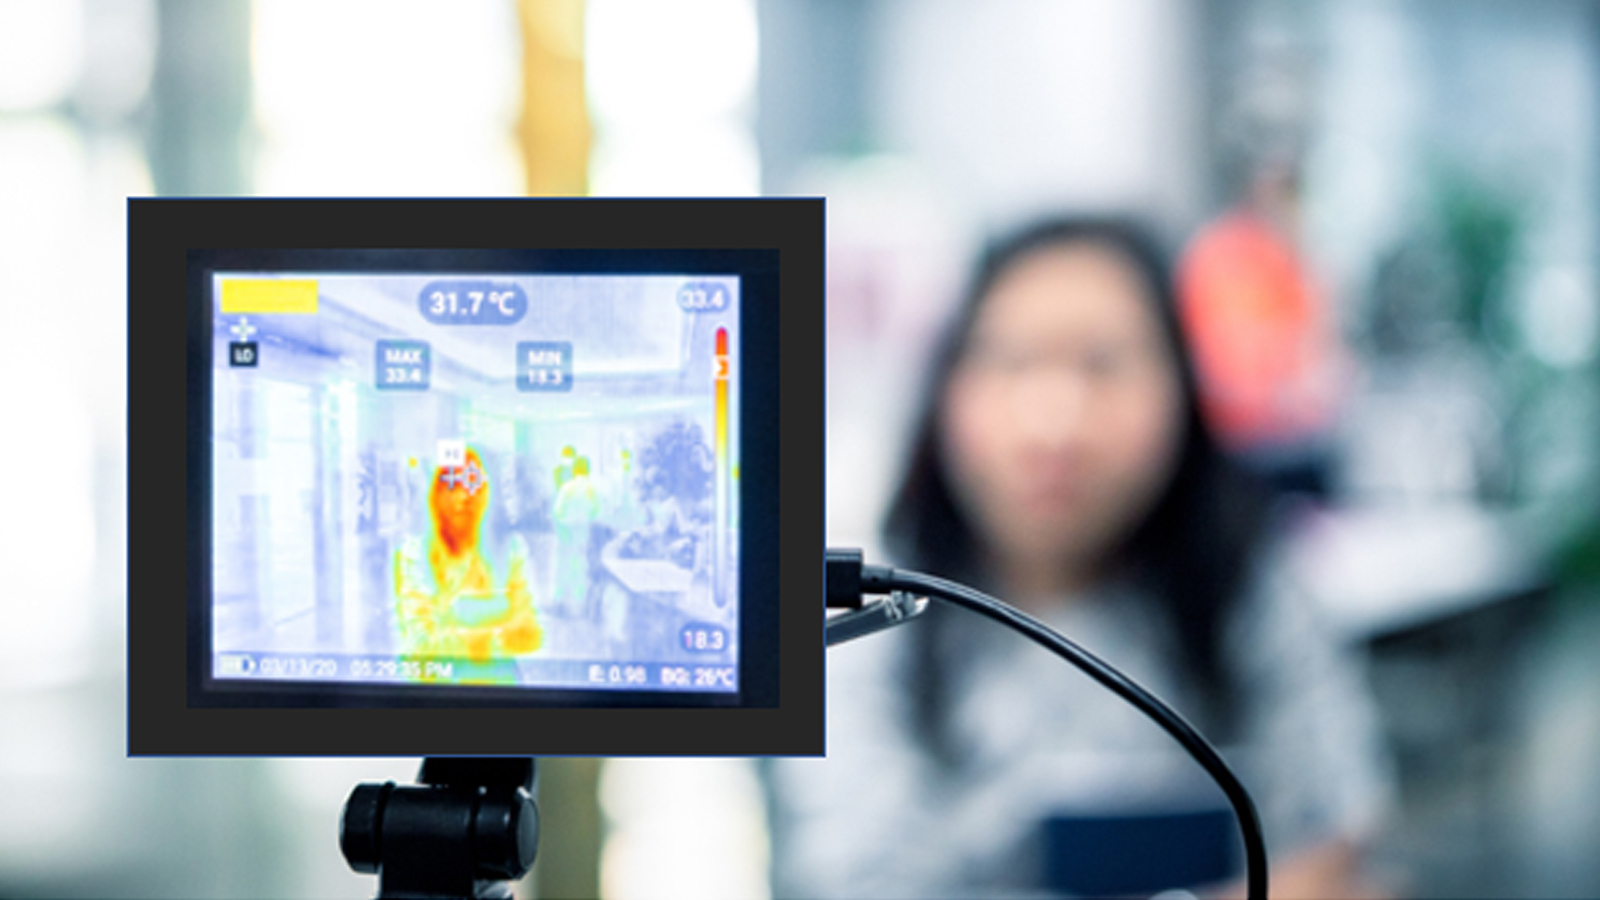 Person getting temperature read by thermal imaging camera